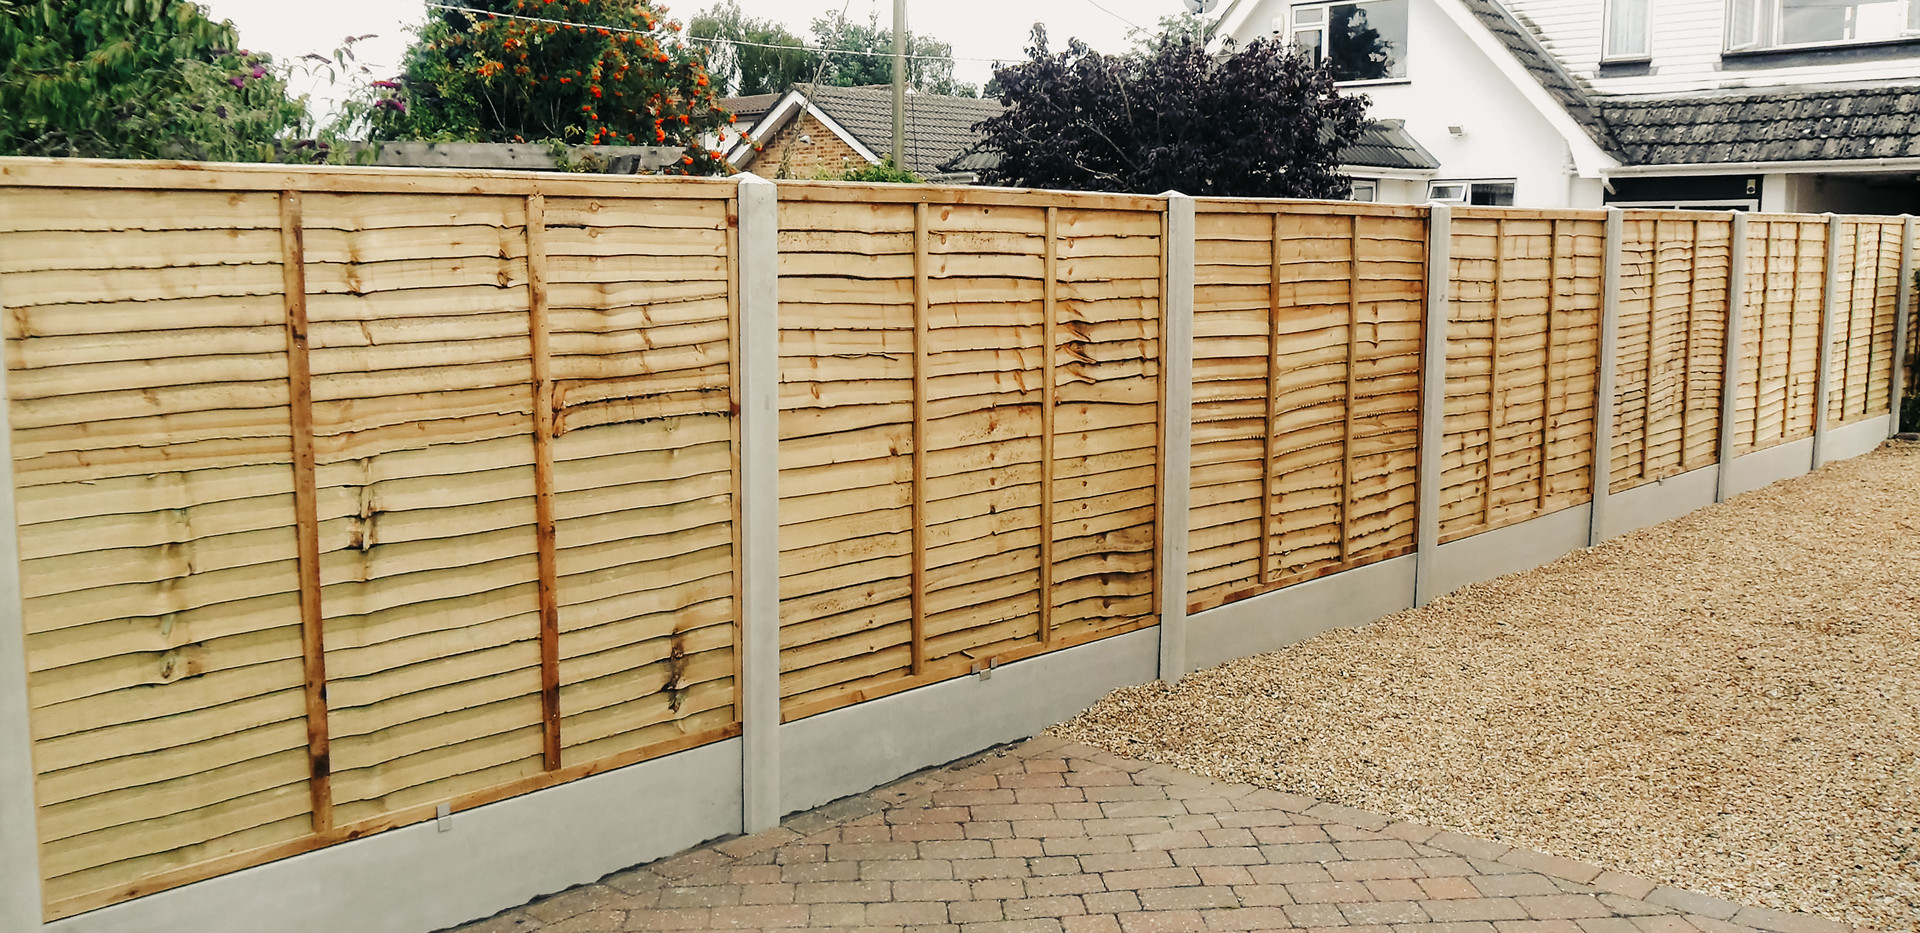 lap panel fencing in front of paved and pebble drive